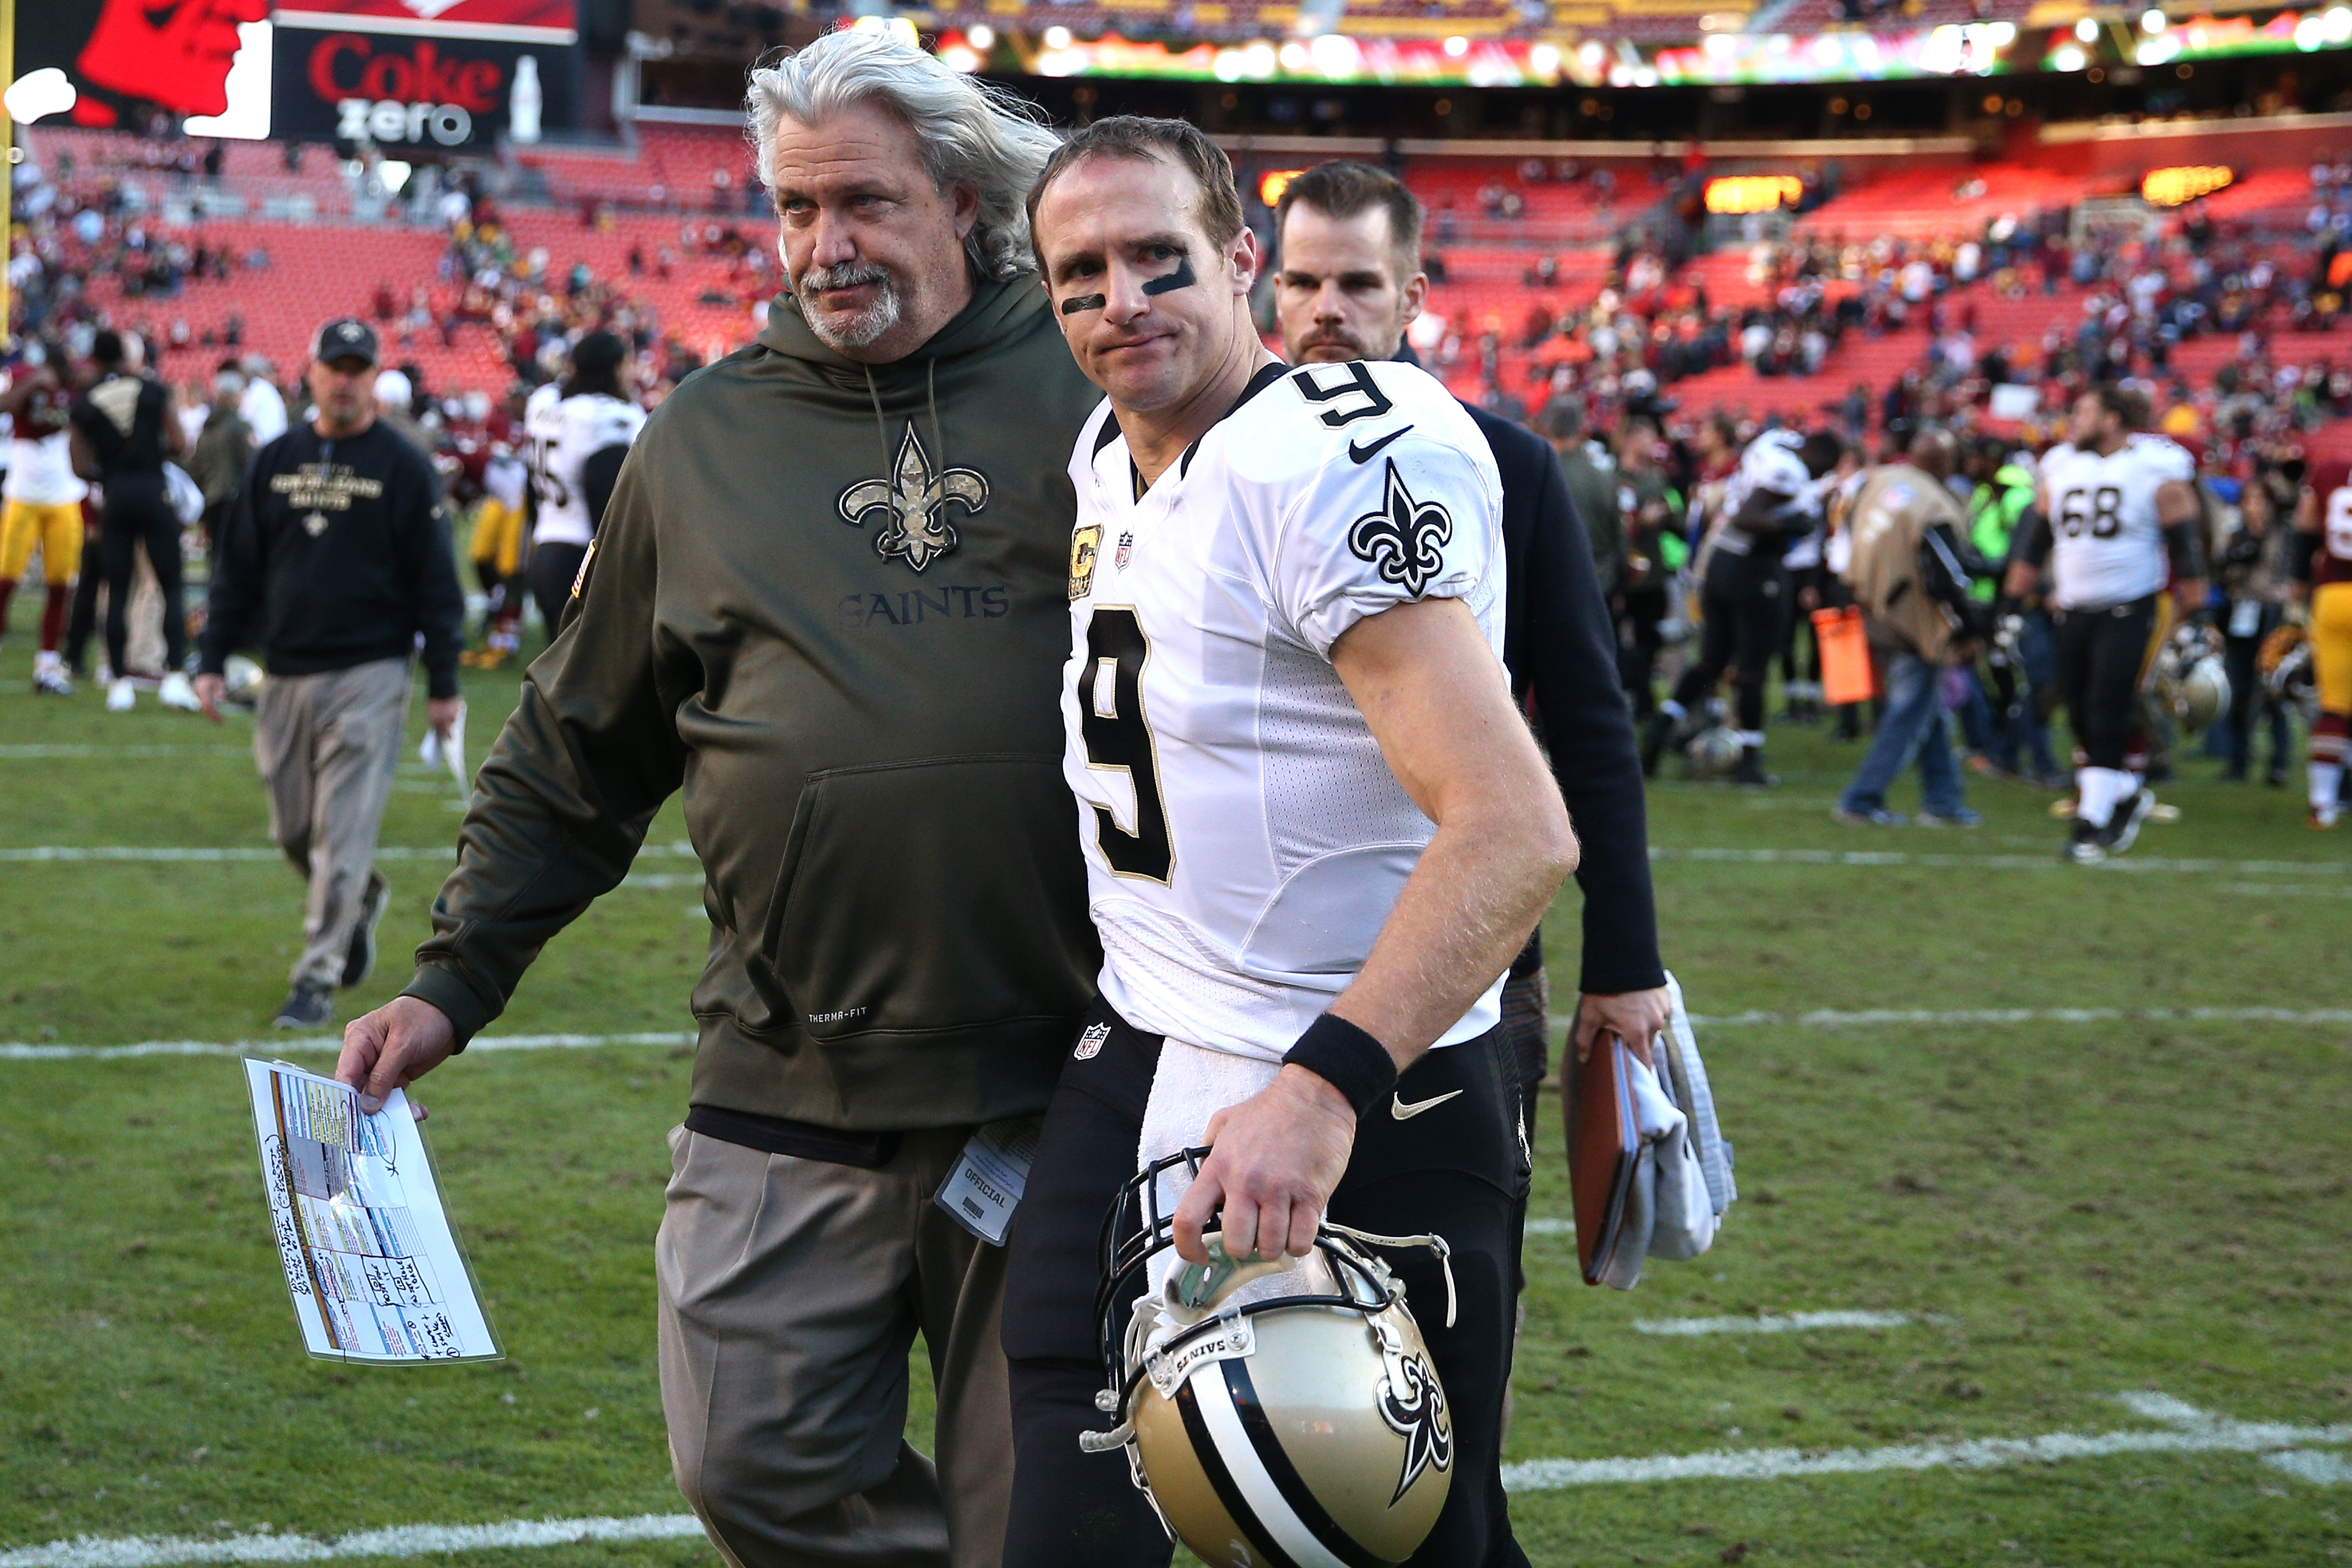 Saints defensive coordinator Rob Ryan, left, lost his job after an embarrassing 47-14 loss to the Washington Redskins in Week 10. Ryan has faced Philadelphia, the Bills' next opponent.